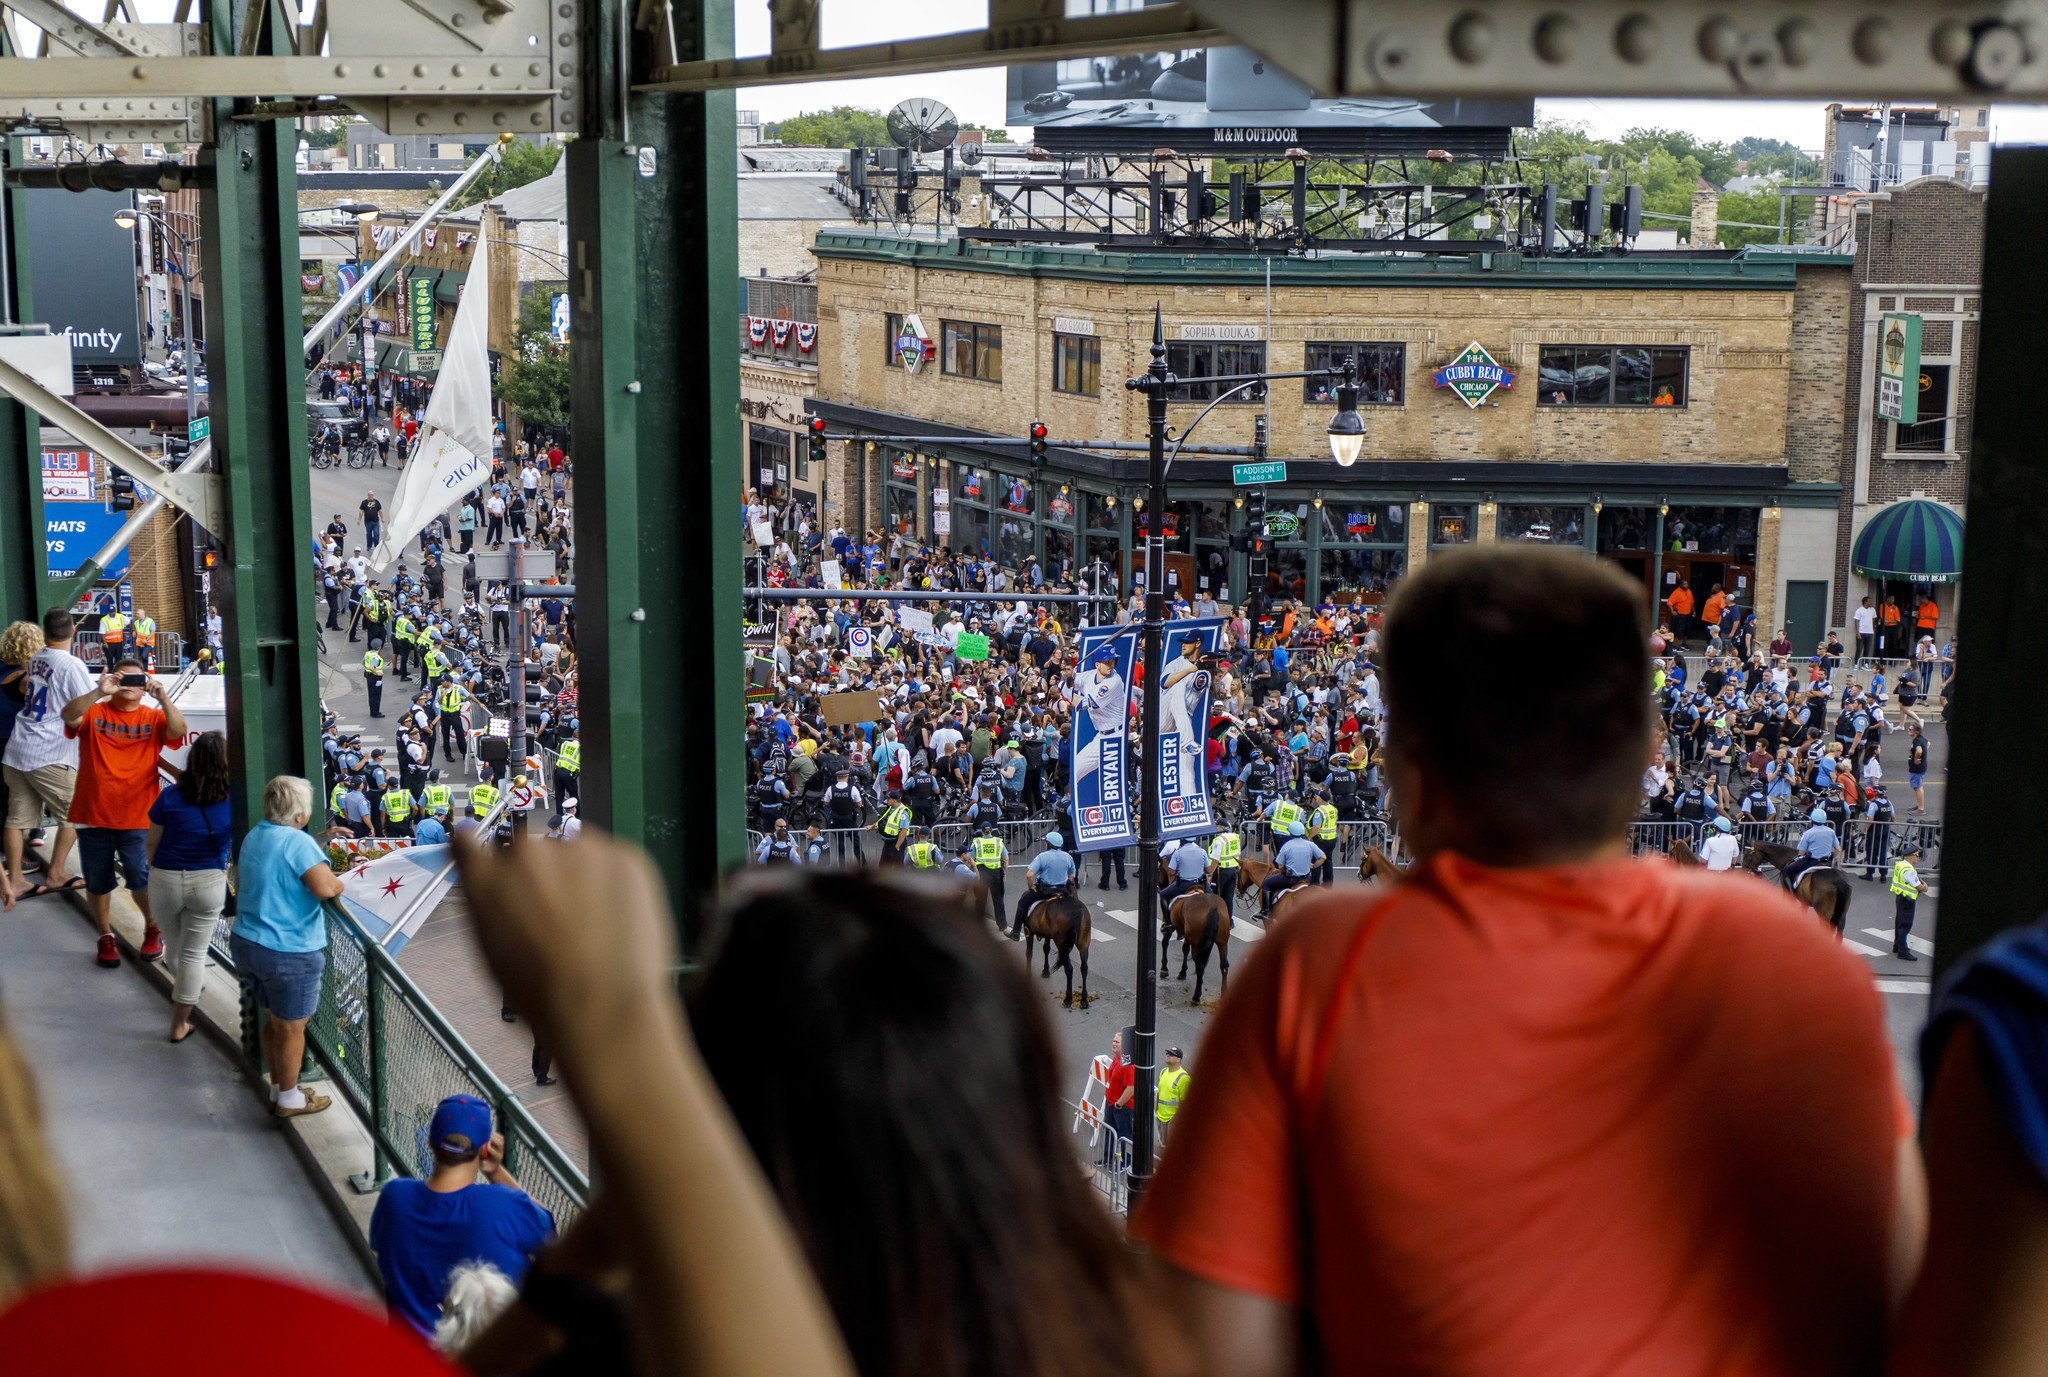 Protesters pray, chant outside Wrigley after anti-violence march briefly shuts down Lake Shore Drive